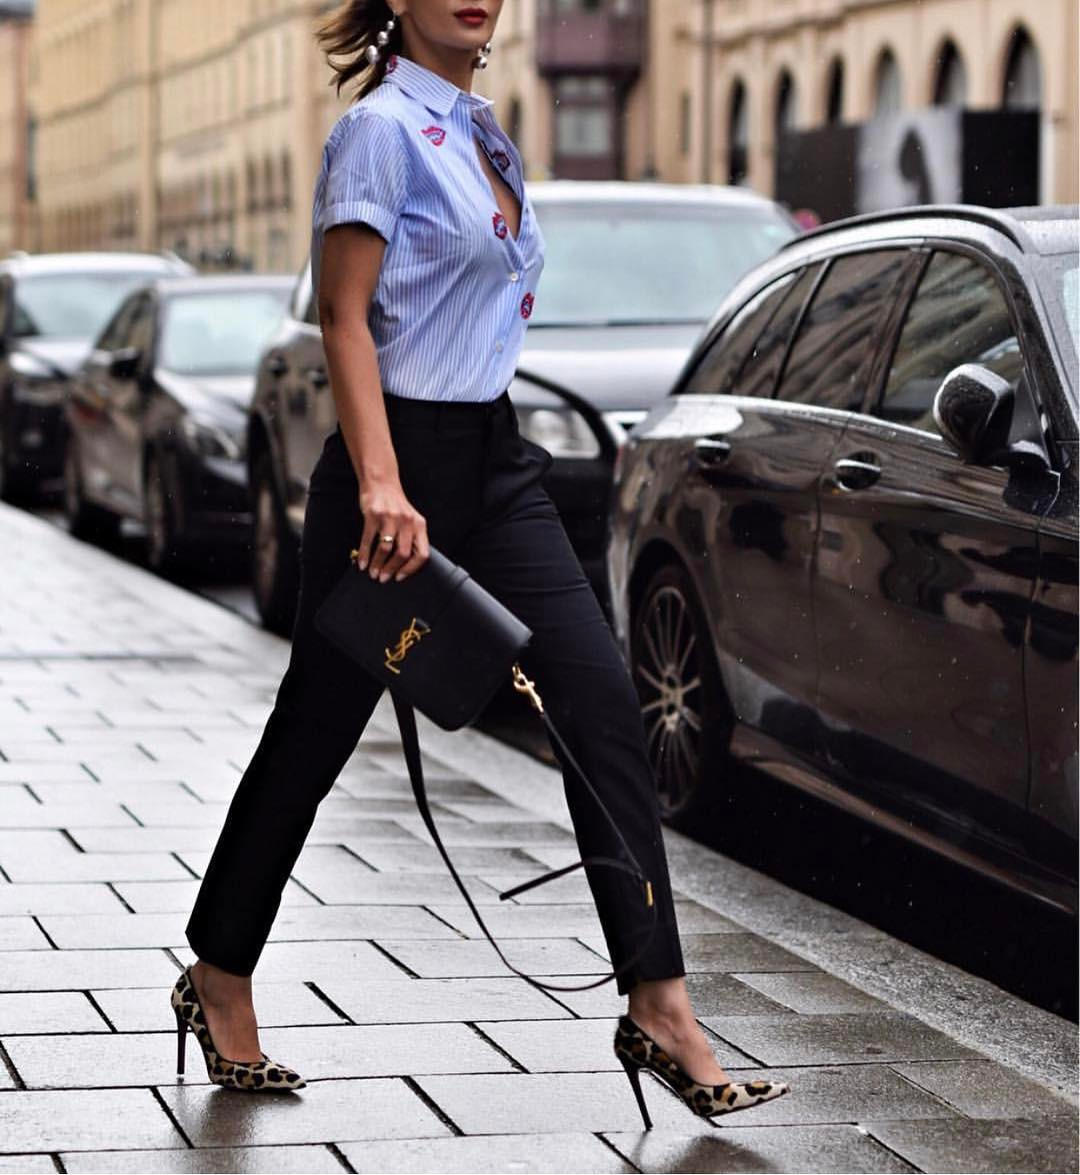 Pinstripe Shirt With Black Pants And Leopard Pumps: Office Style Look 2021